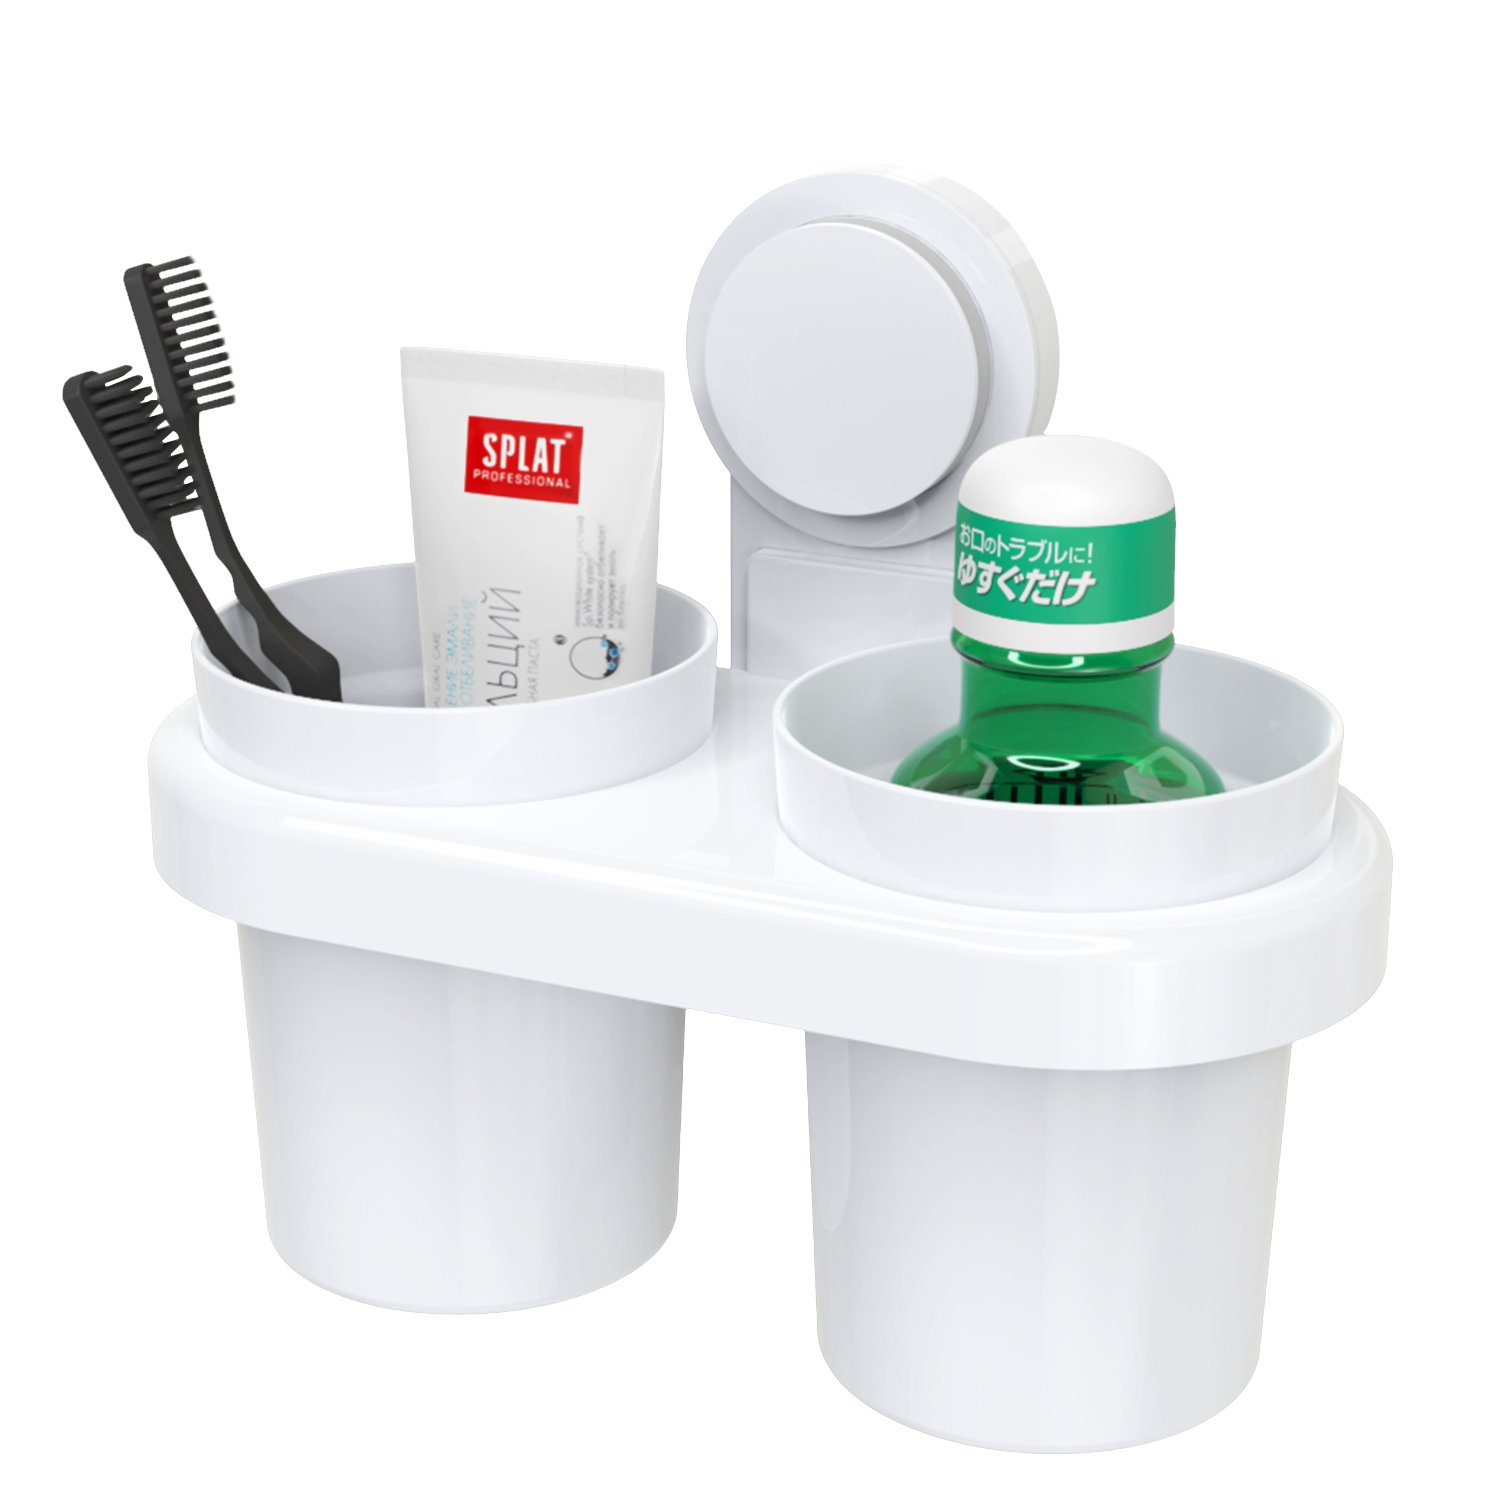 TOENNESEN Bathroom Wall Suction Toothbrush & Toothpaste Holder with Two Cups